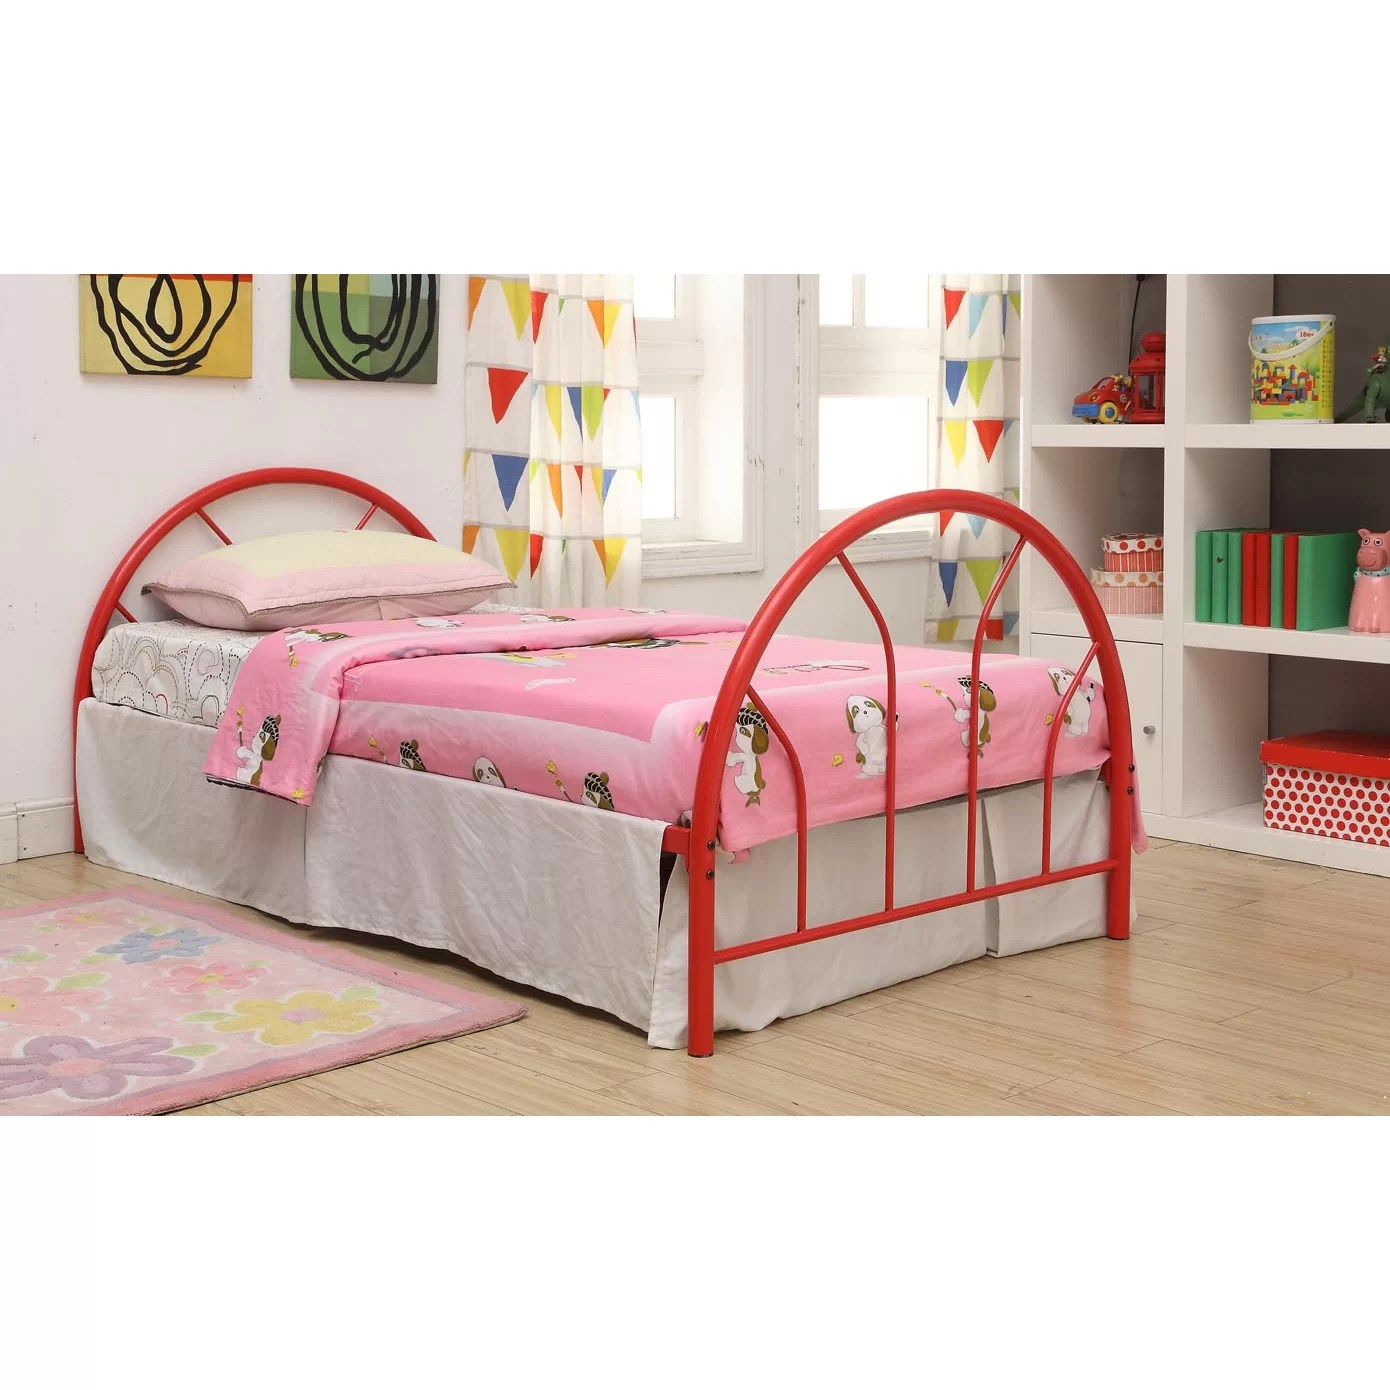 Viv Rae Makayla Twin Wrought Iron Bed Reviews Wayfair